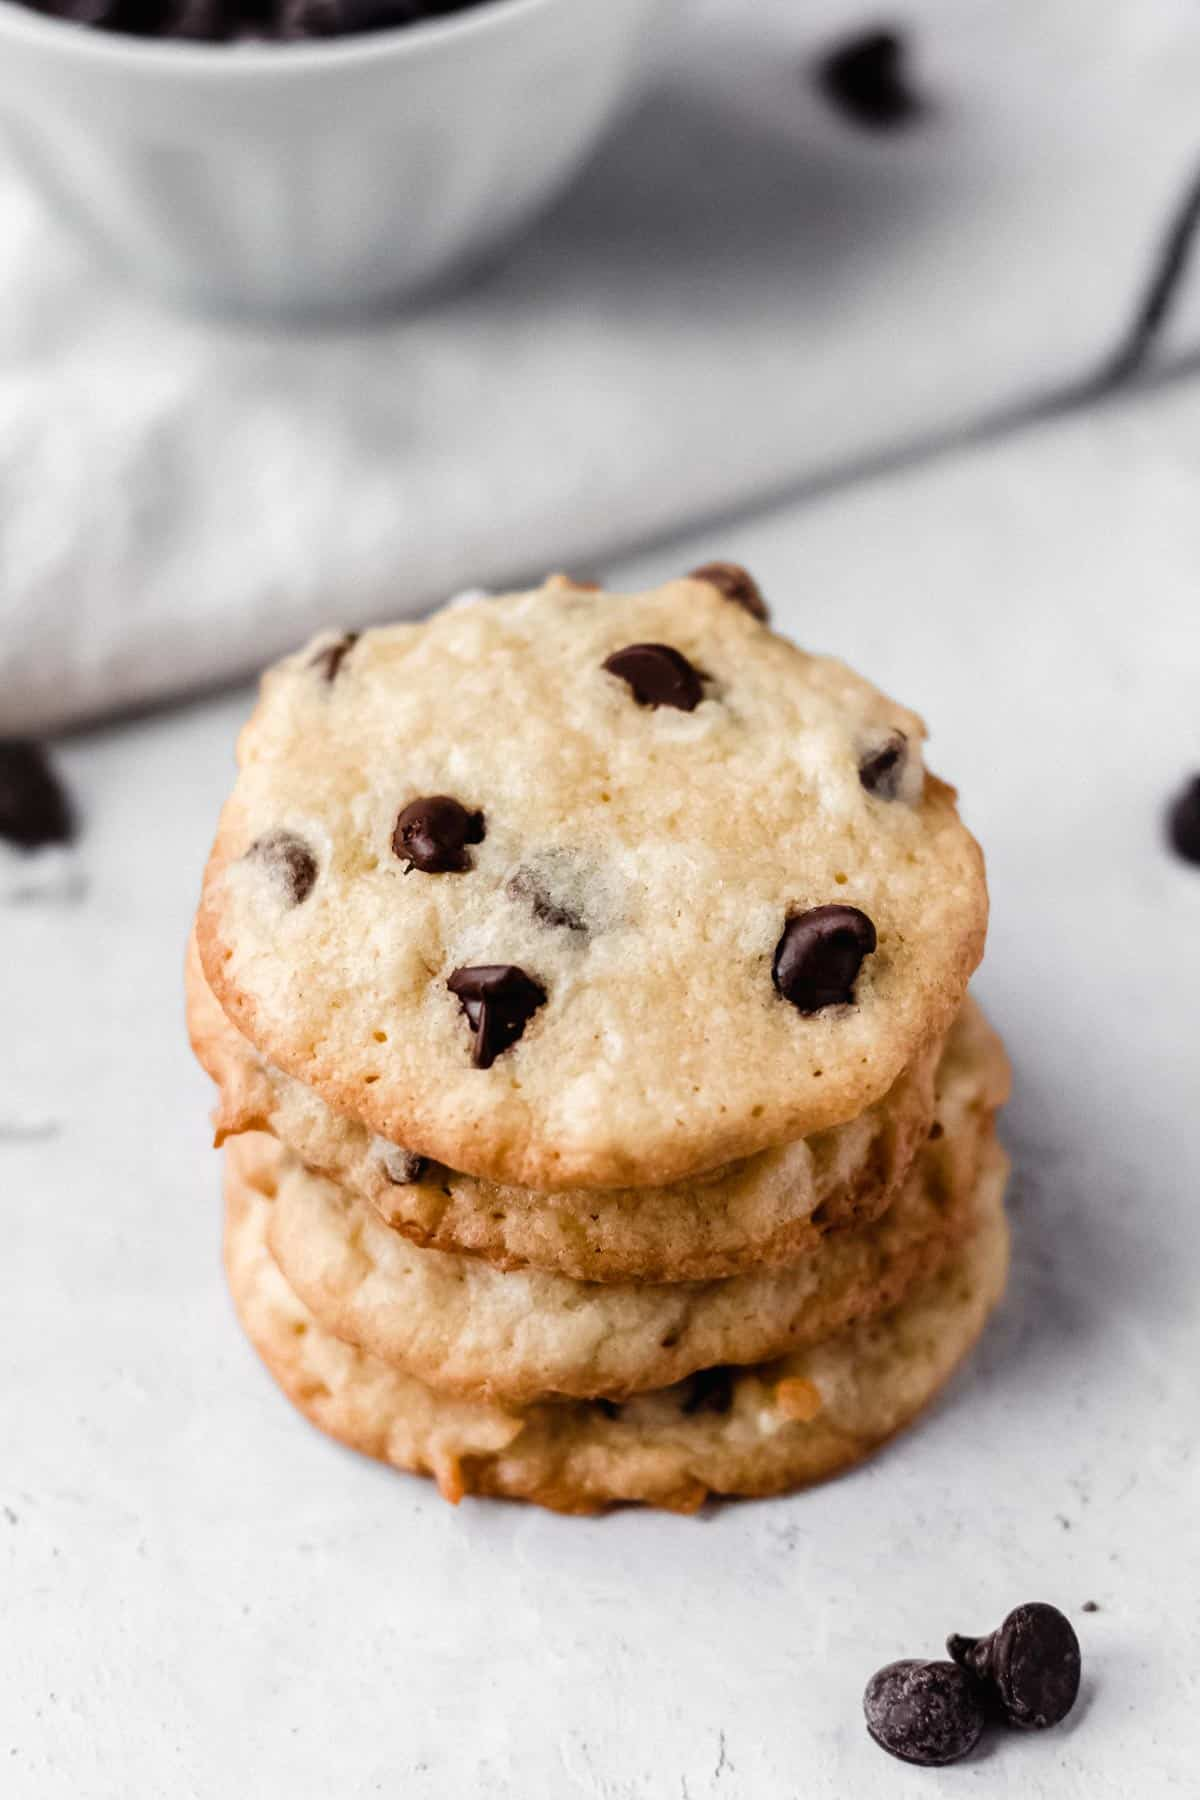 Stack of 5 coconut chocolate chip cookies on a white background with chocolate chips, a white towel and a bowl in the background